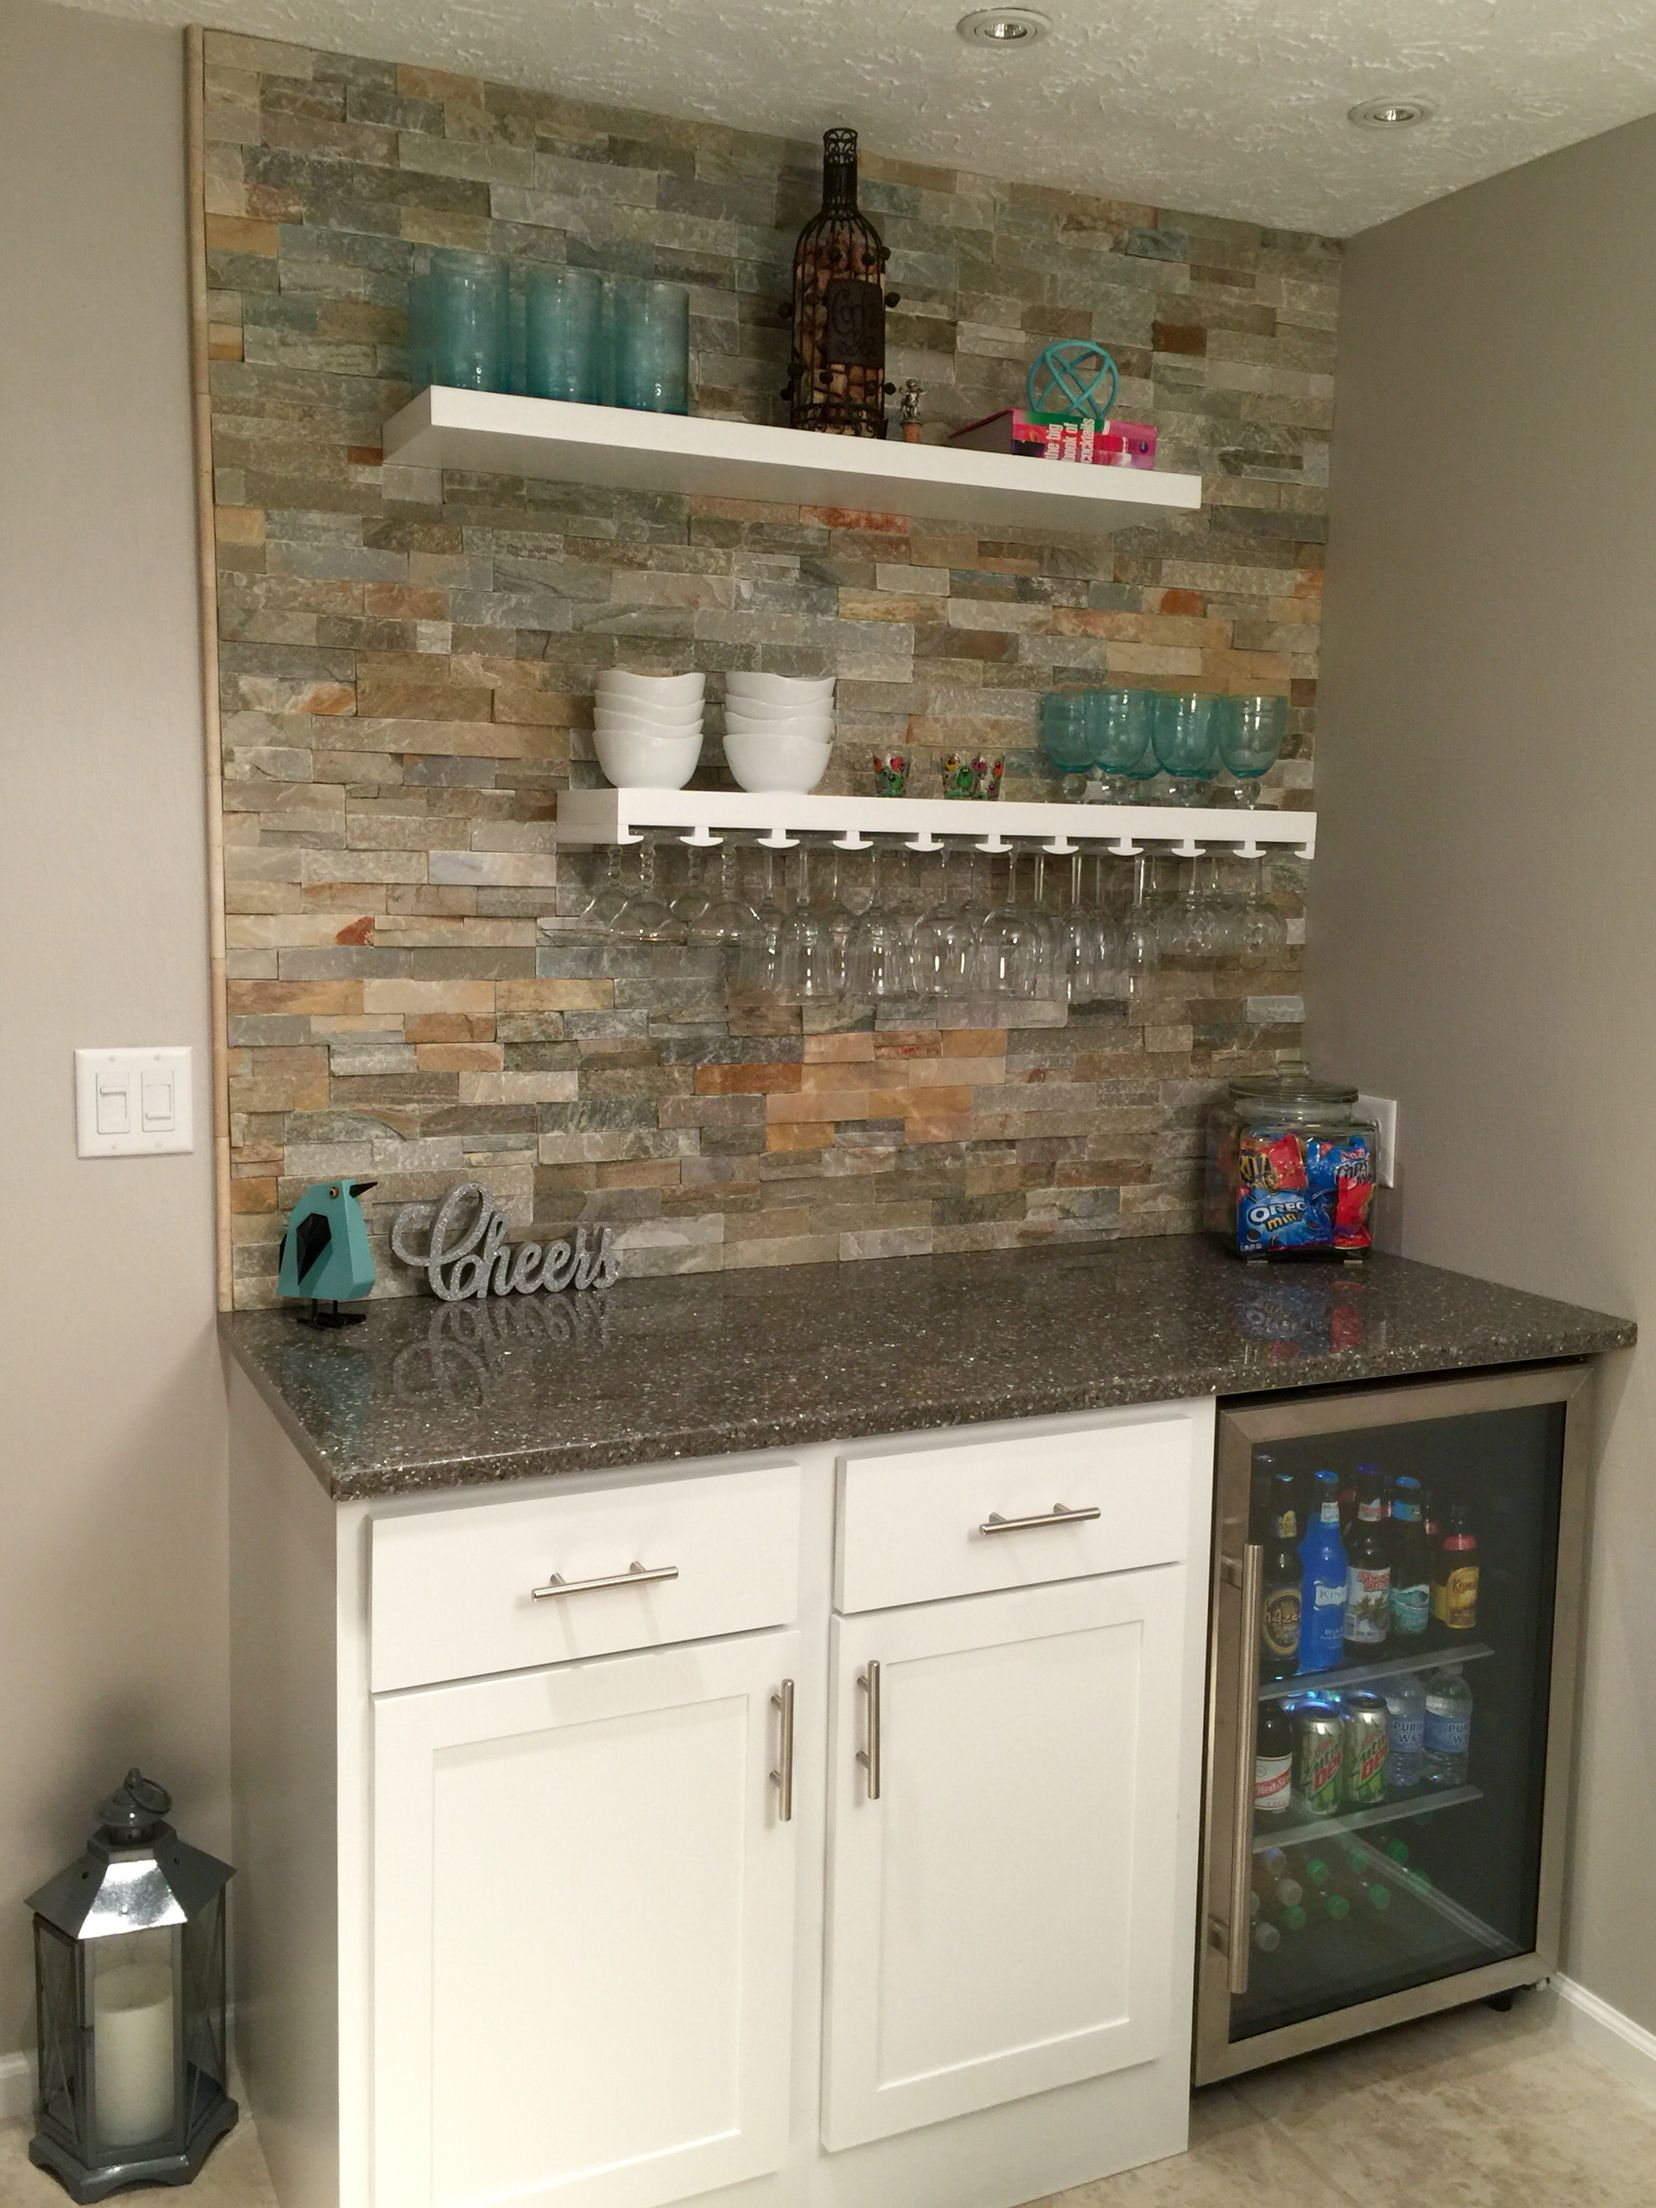 Small Dry Bar With Lowes Desert Quartz Ledge Stone Floating Shelves Hanging Gles Rack Refrigerator Awesome